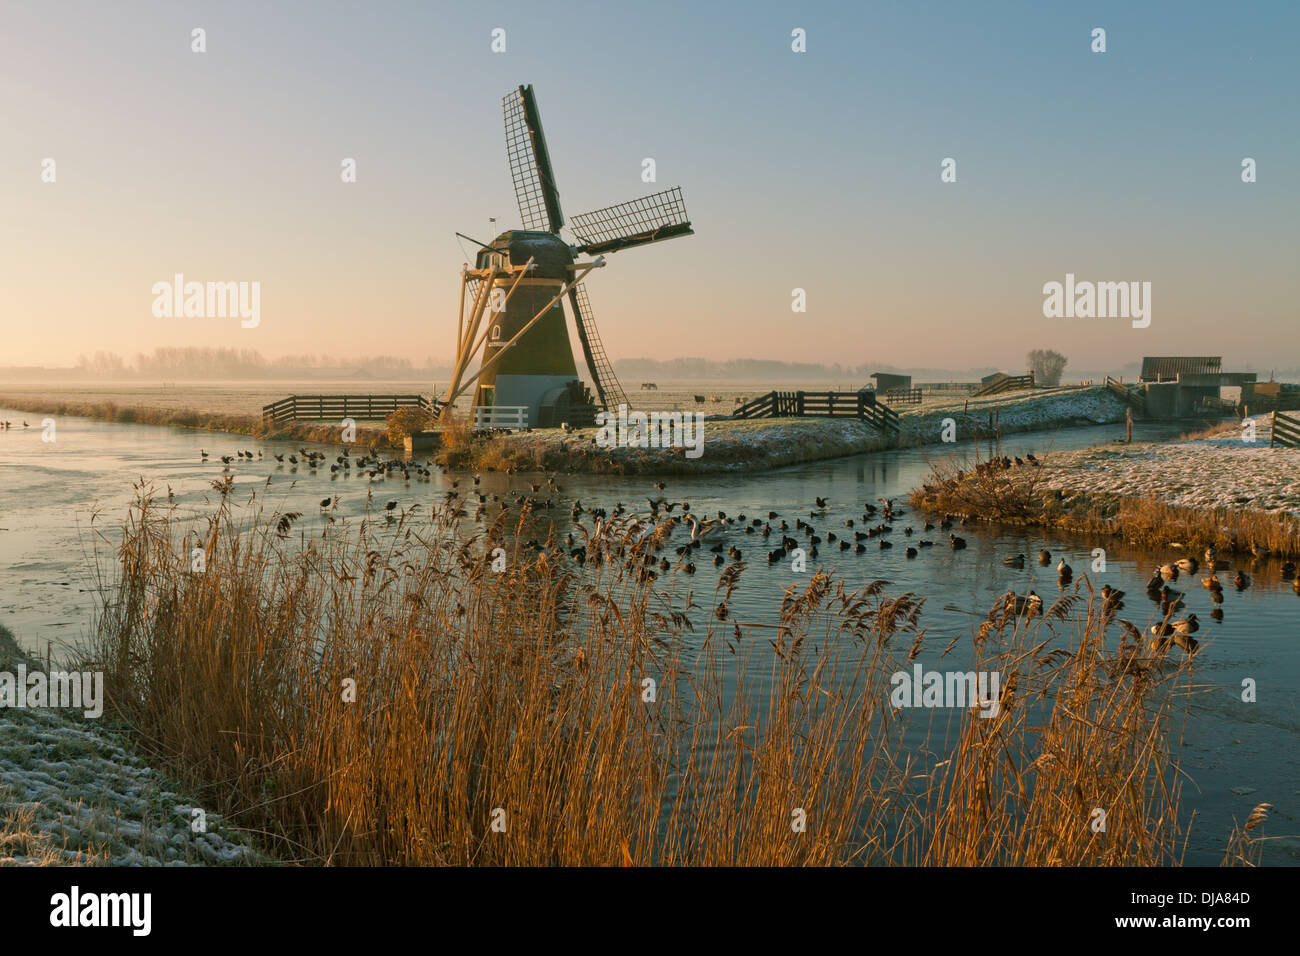 Drainage mill ''Hope springs eternal'' in  typically Dutch flat landscape in winter, Voorhout, South Holland, The Netherlands. - Stock Image